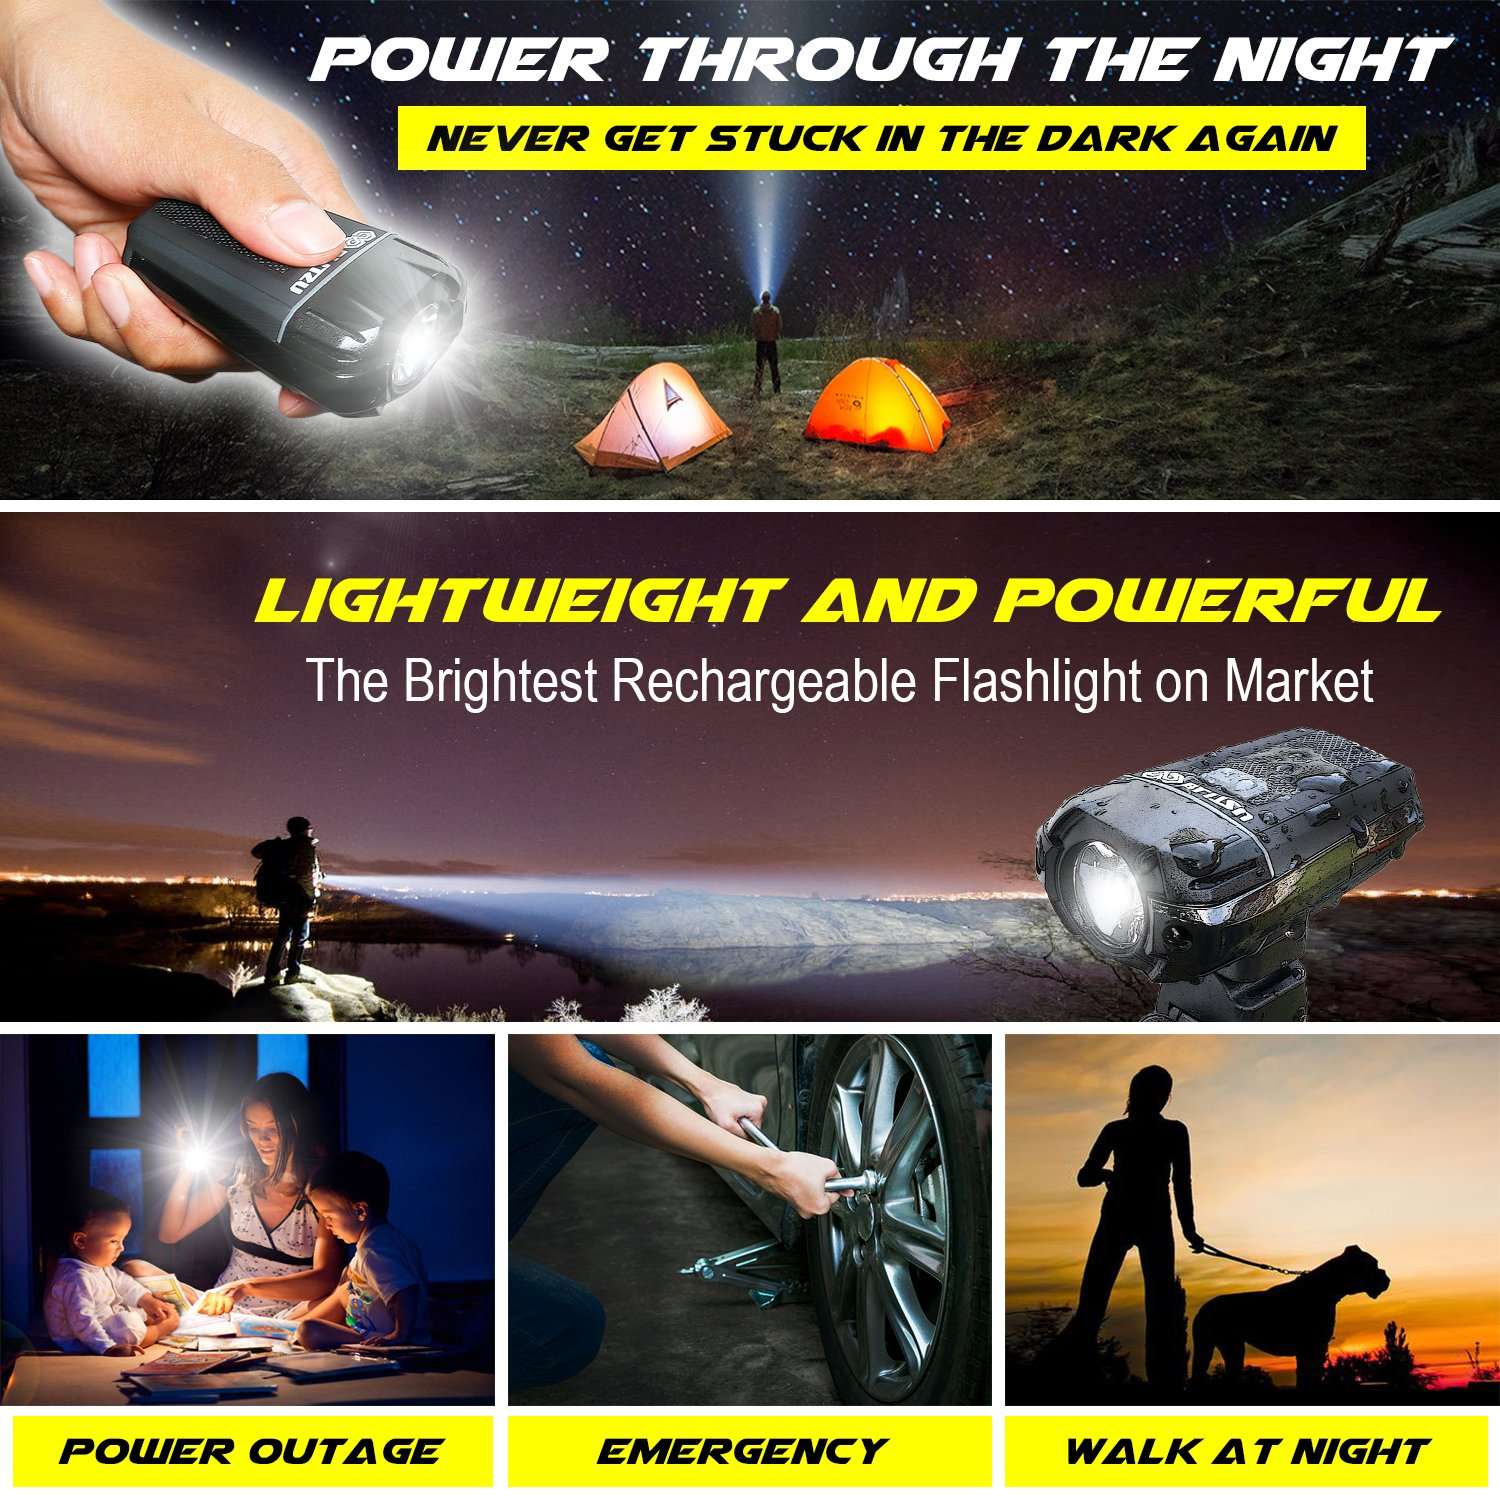 BLITZU Gator 380 USB Rechargeable Bike Light Set POWERFUL Lumens Bicycle Headlight FREE TAIL LIGHT, LED Front and Back Rear Lights Easy To Install for Kids Men Women Road Cycling Safety Flashlight by BLITZU (Image #6)